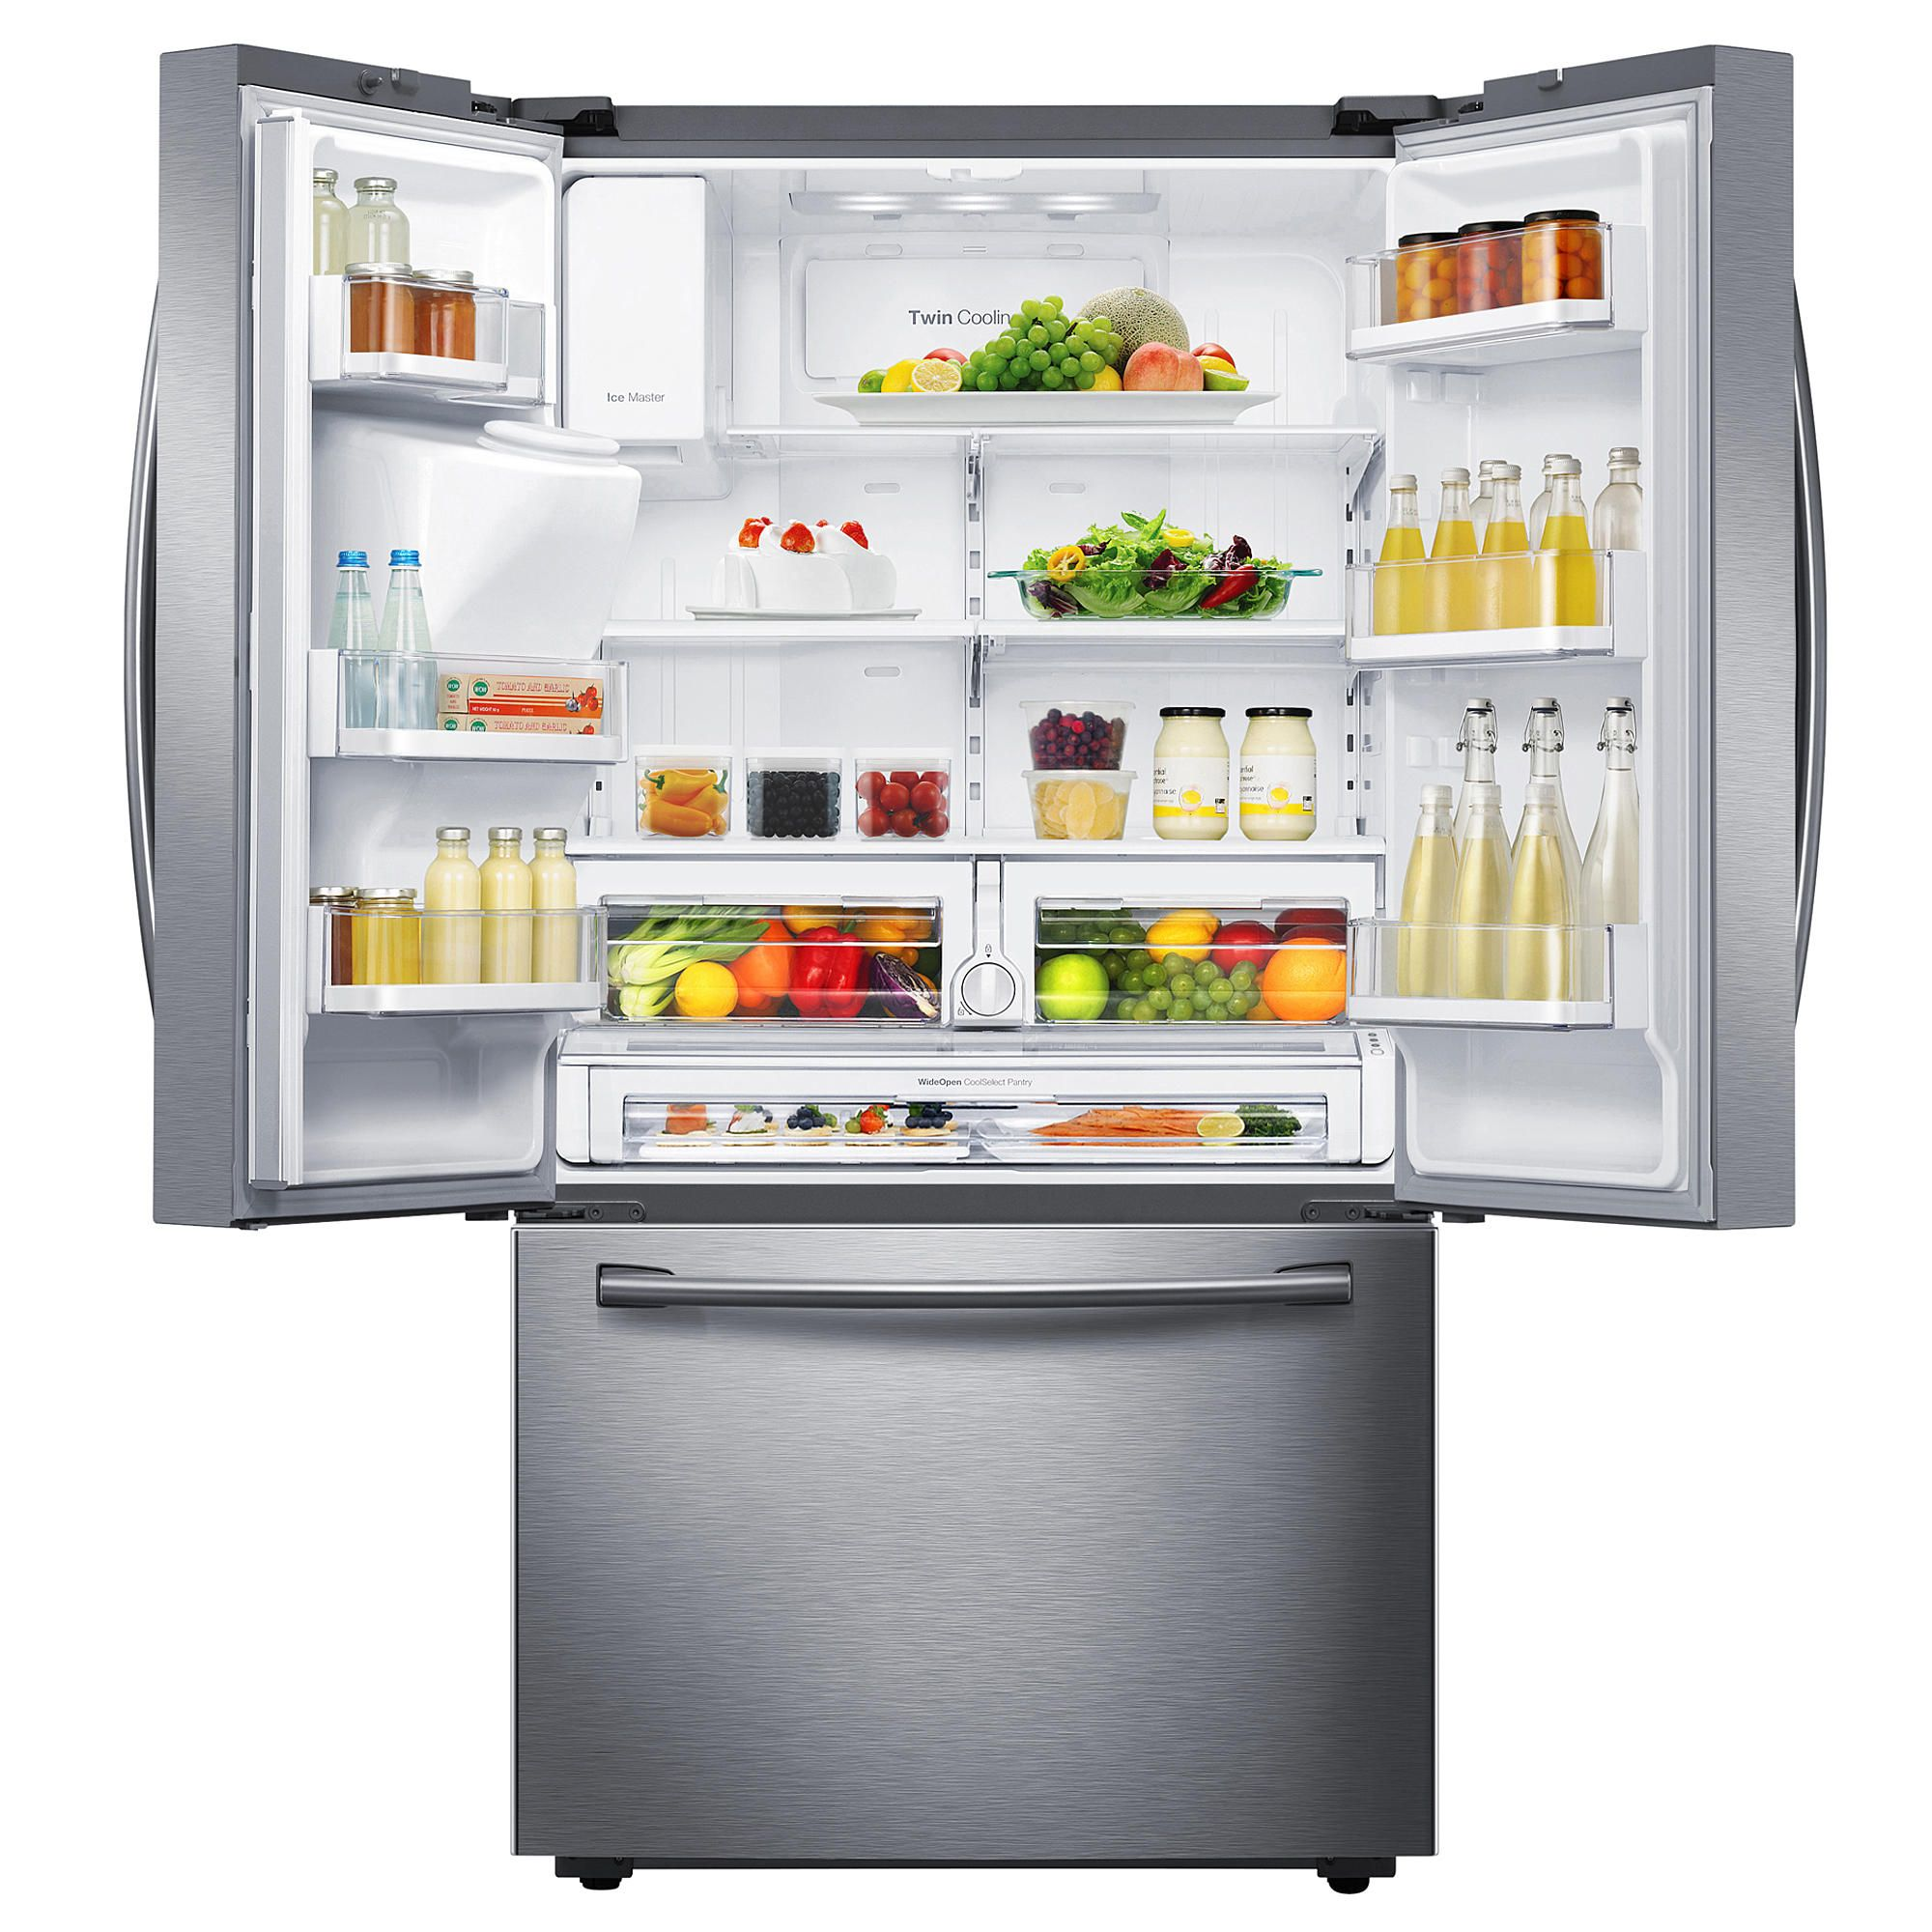 Samsung 28 Cu Ft French Door Refrigerator Fresh And